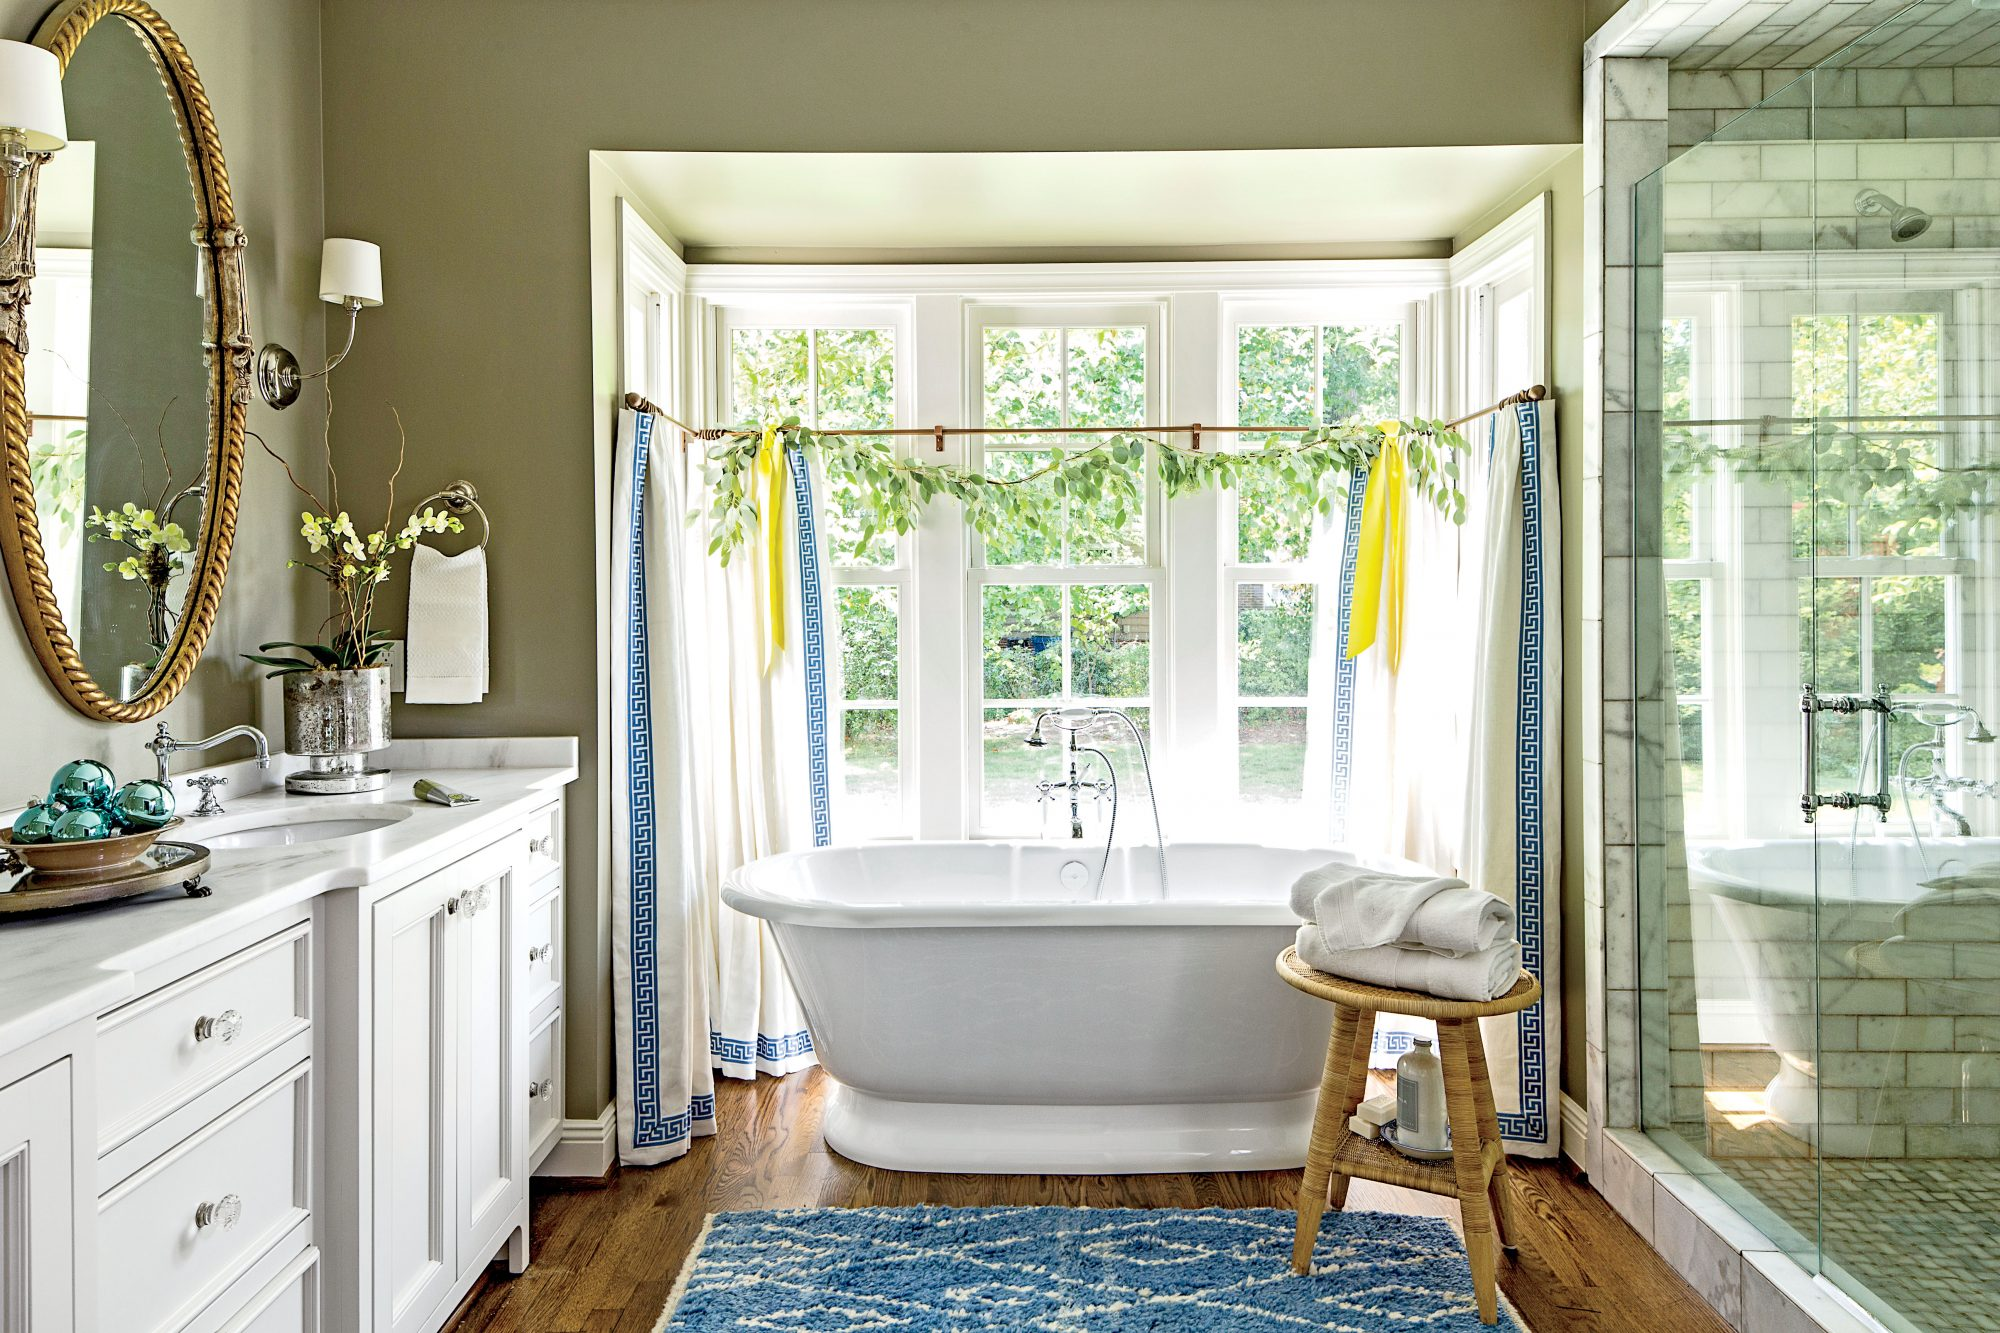 stand-alone bathtubs that we know you've been dreaming about